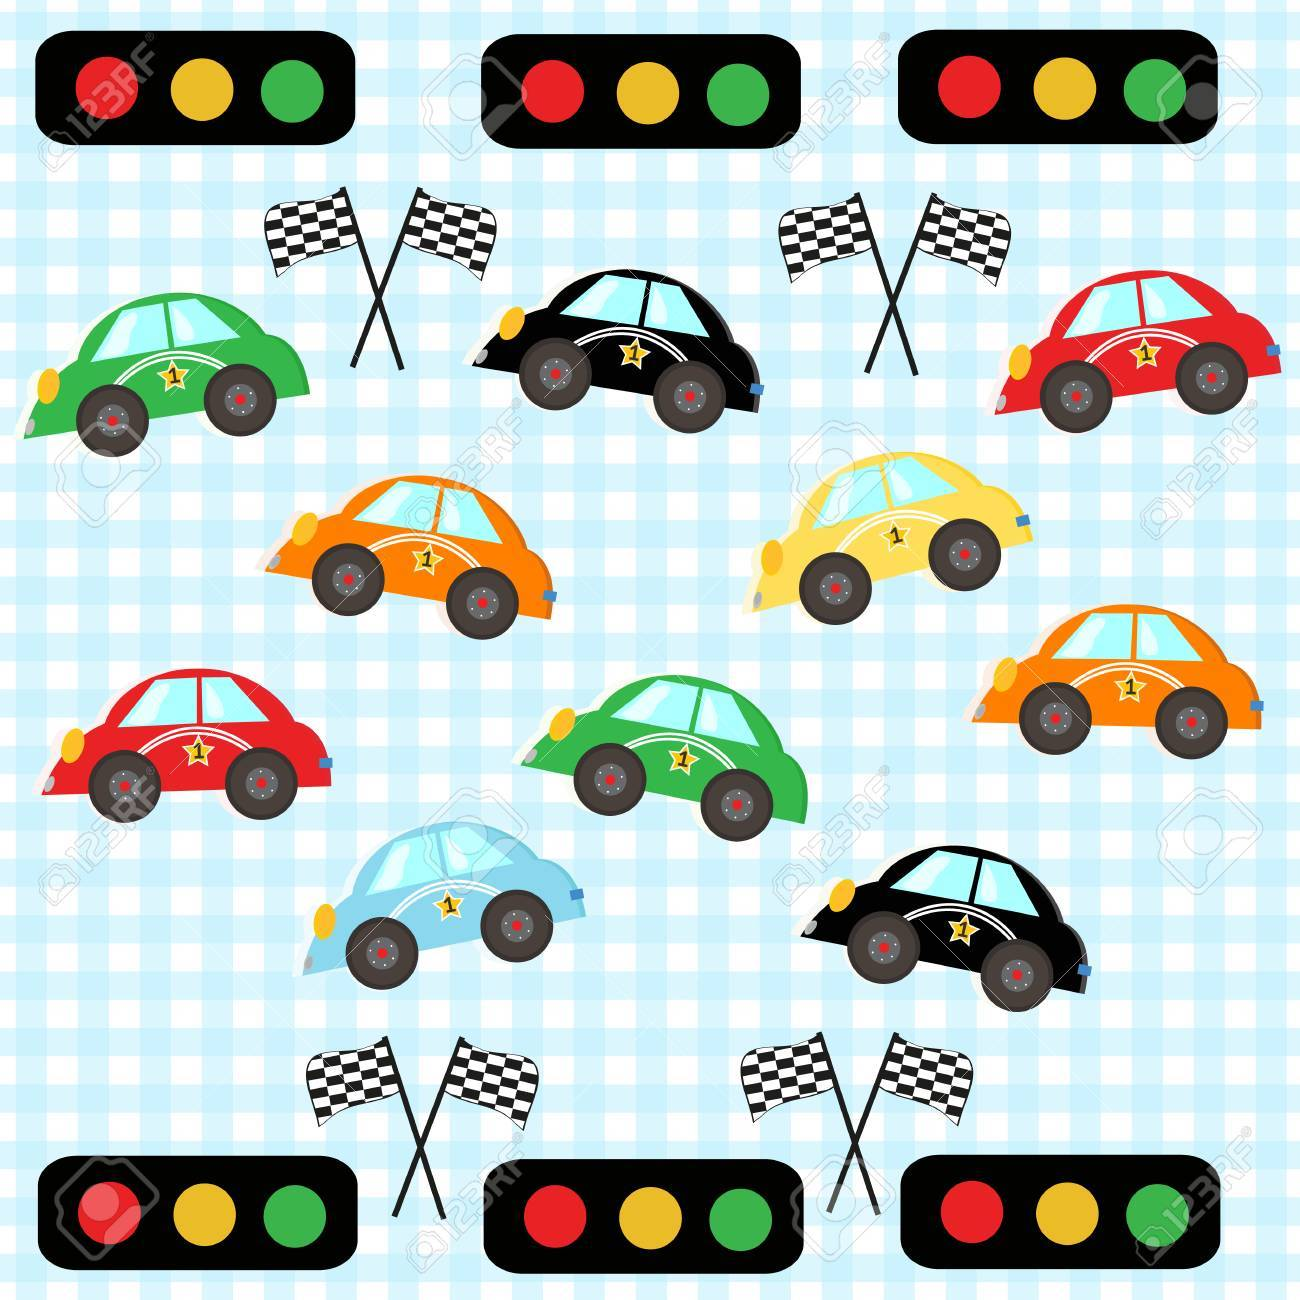 Colorful Race Car. Kids Room Wallpaper Pattern Cars Vector Illustration  Royalty Free Cliparts, Vectors, And Stock Illustration. Image 66080286.